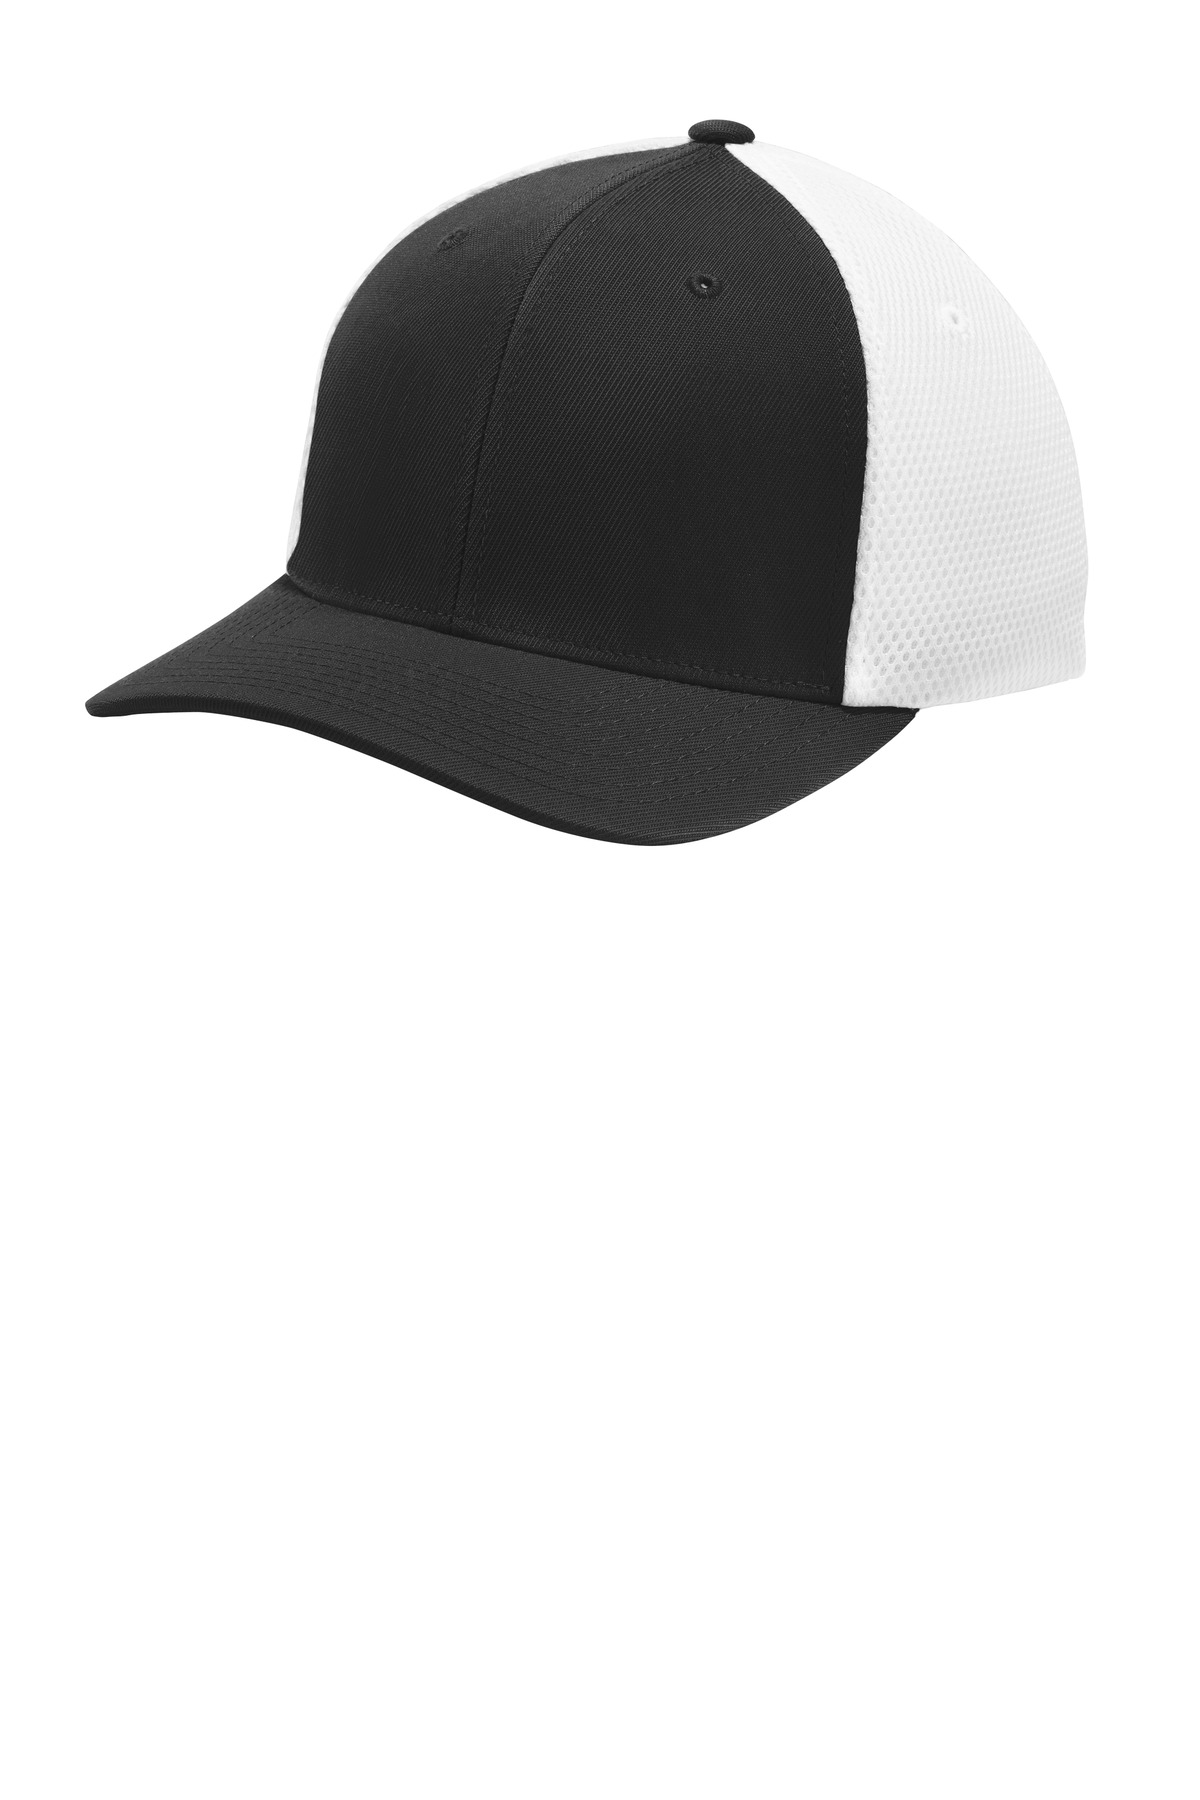 Sport-Tek  ®  Flexfit  ®  Air Mesh Back Cap. STC40 - Black/ White